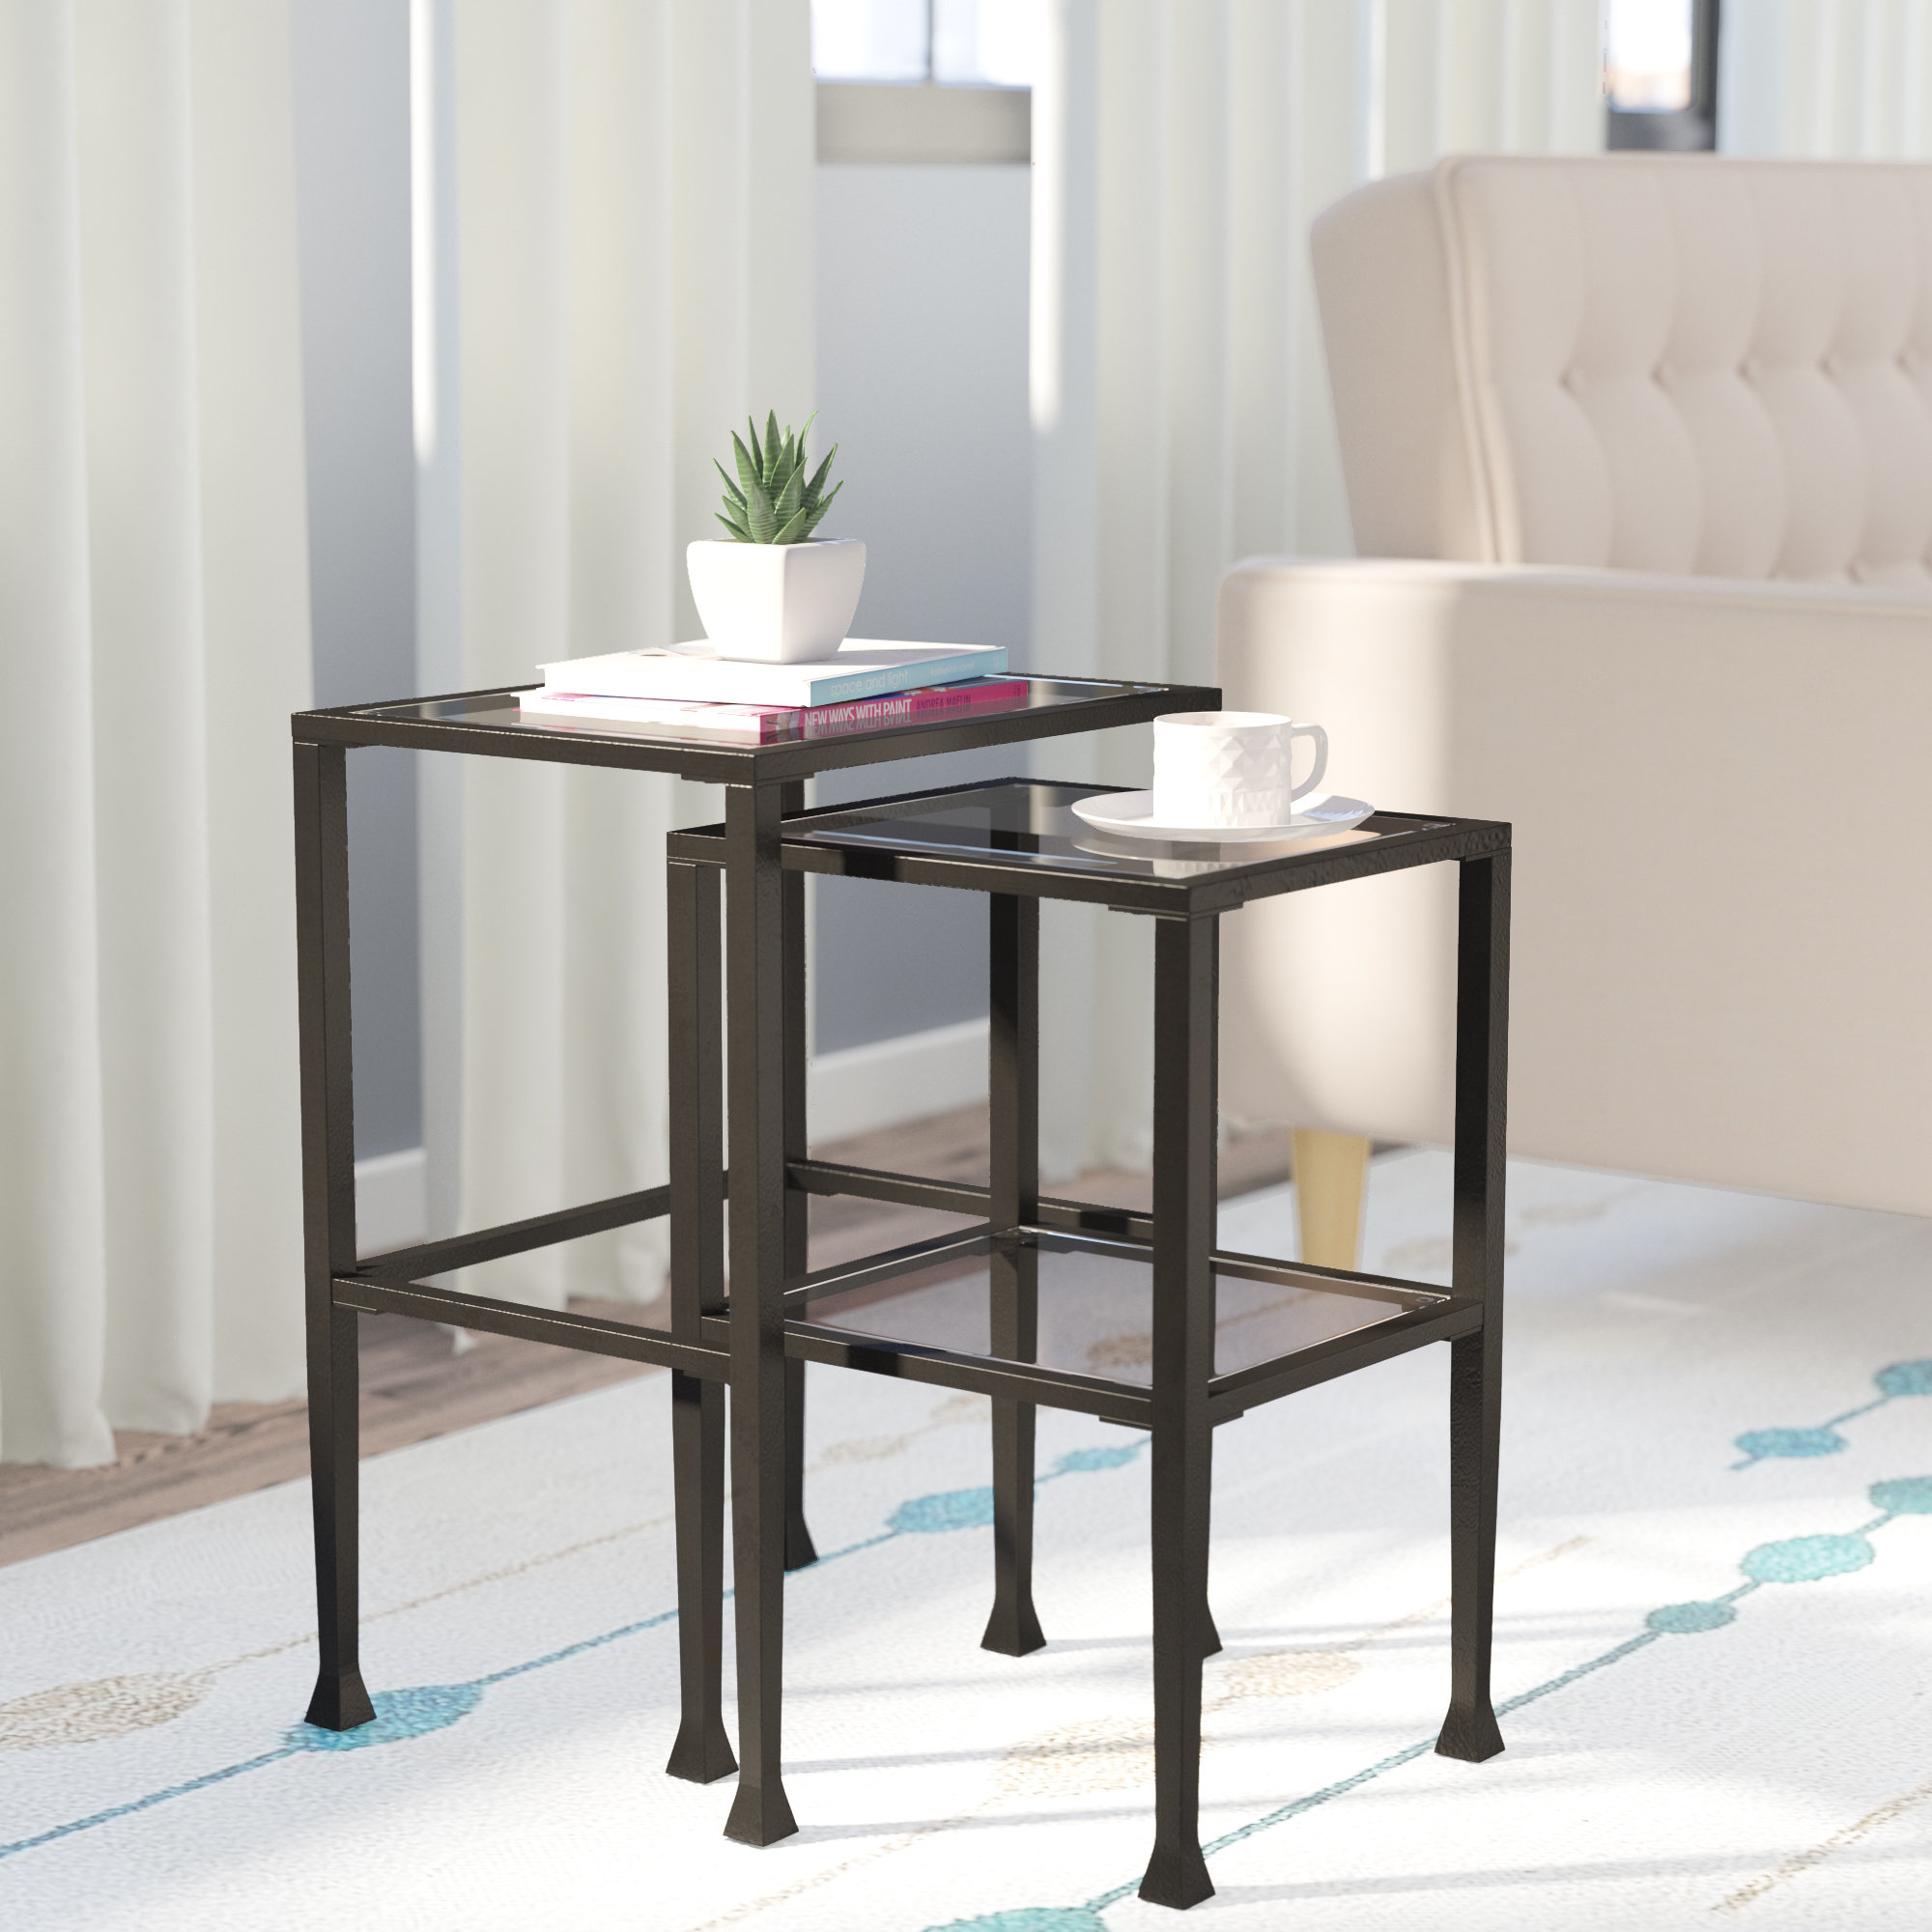 nesting tables you love sabrina piece inch high accent black metal end table with glass top industrial coffee set skinny white wooden crate side gold legs outdoor garden chairs